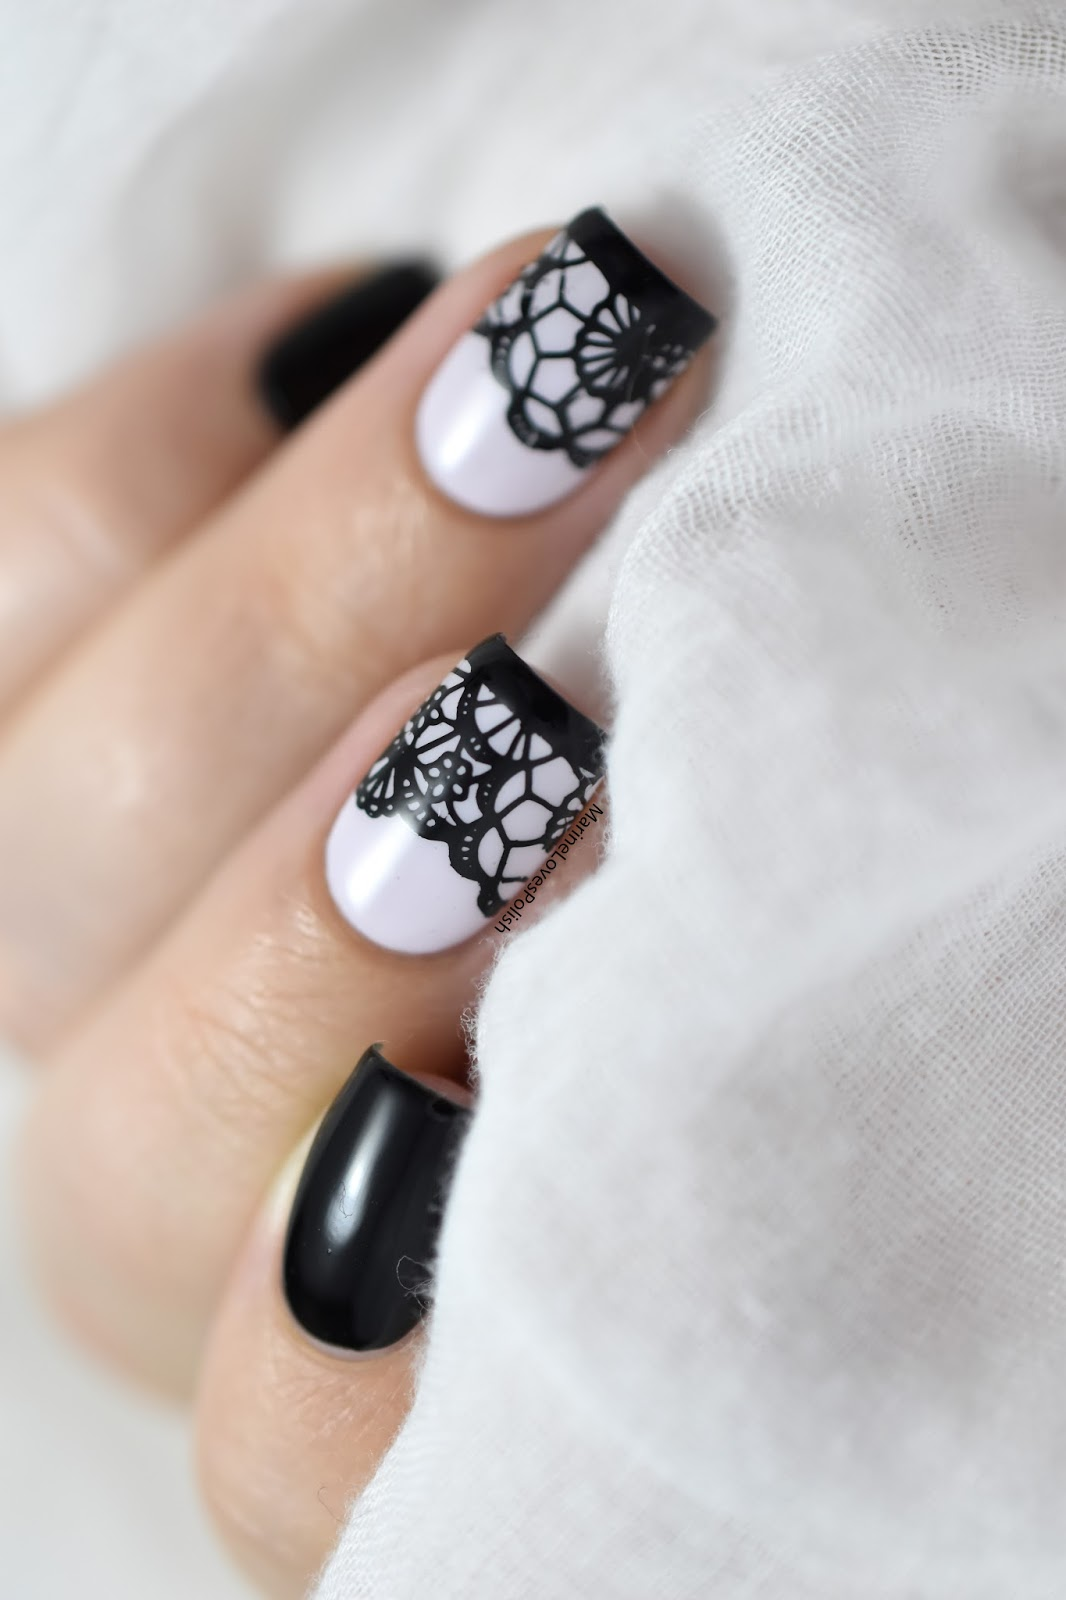 Nailstorming saint valentin lace nail art video tutorial nailstorming saint valentin lace nail art video tutorial prinsesfo Image collections